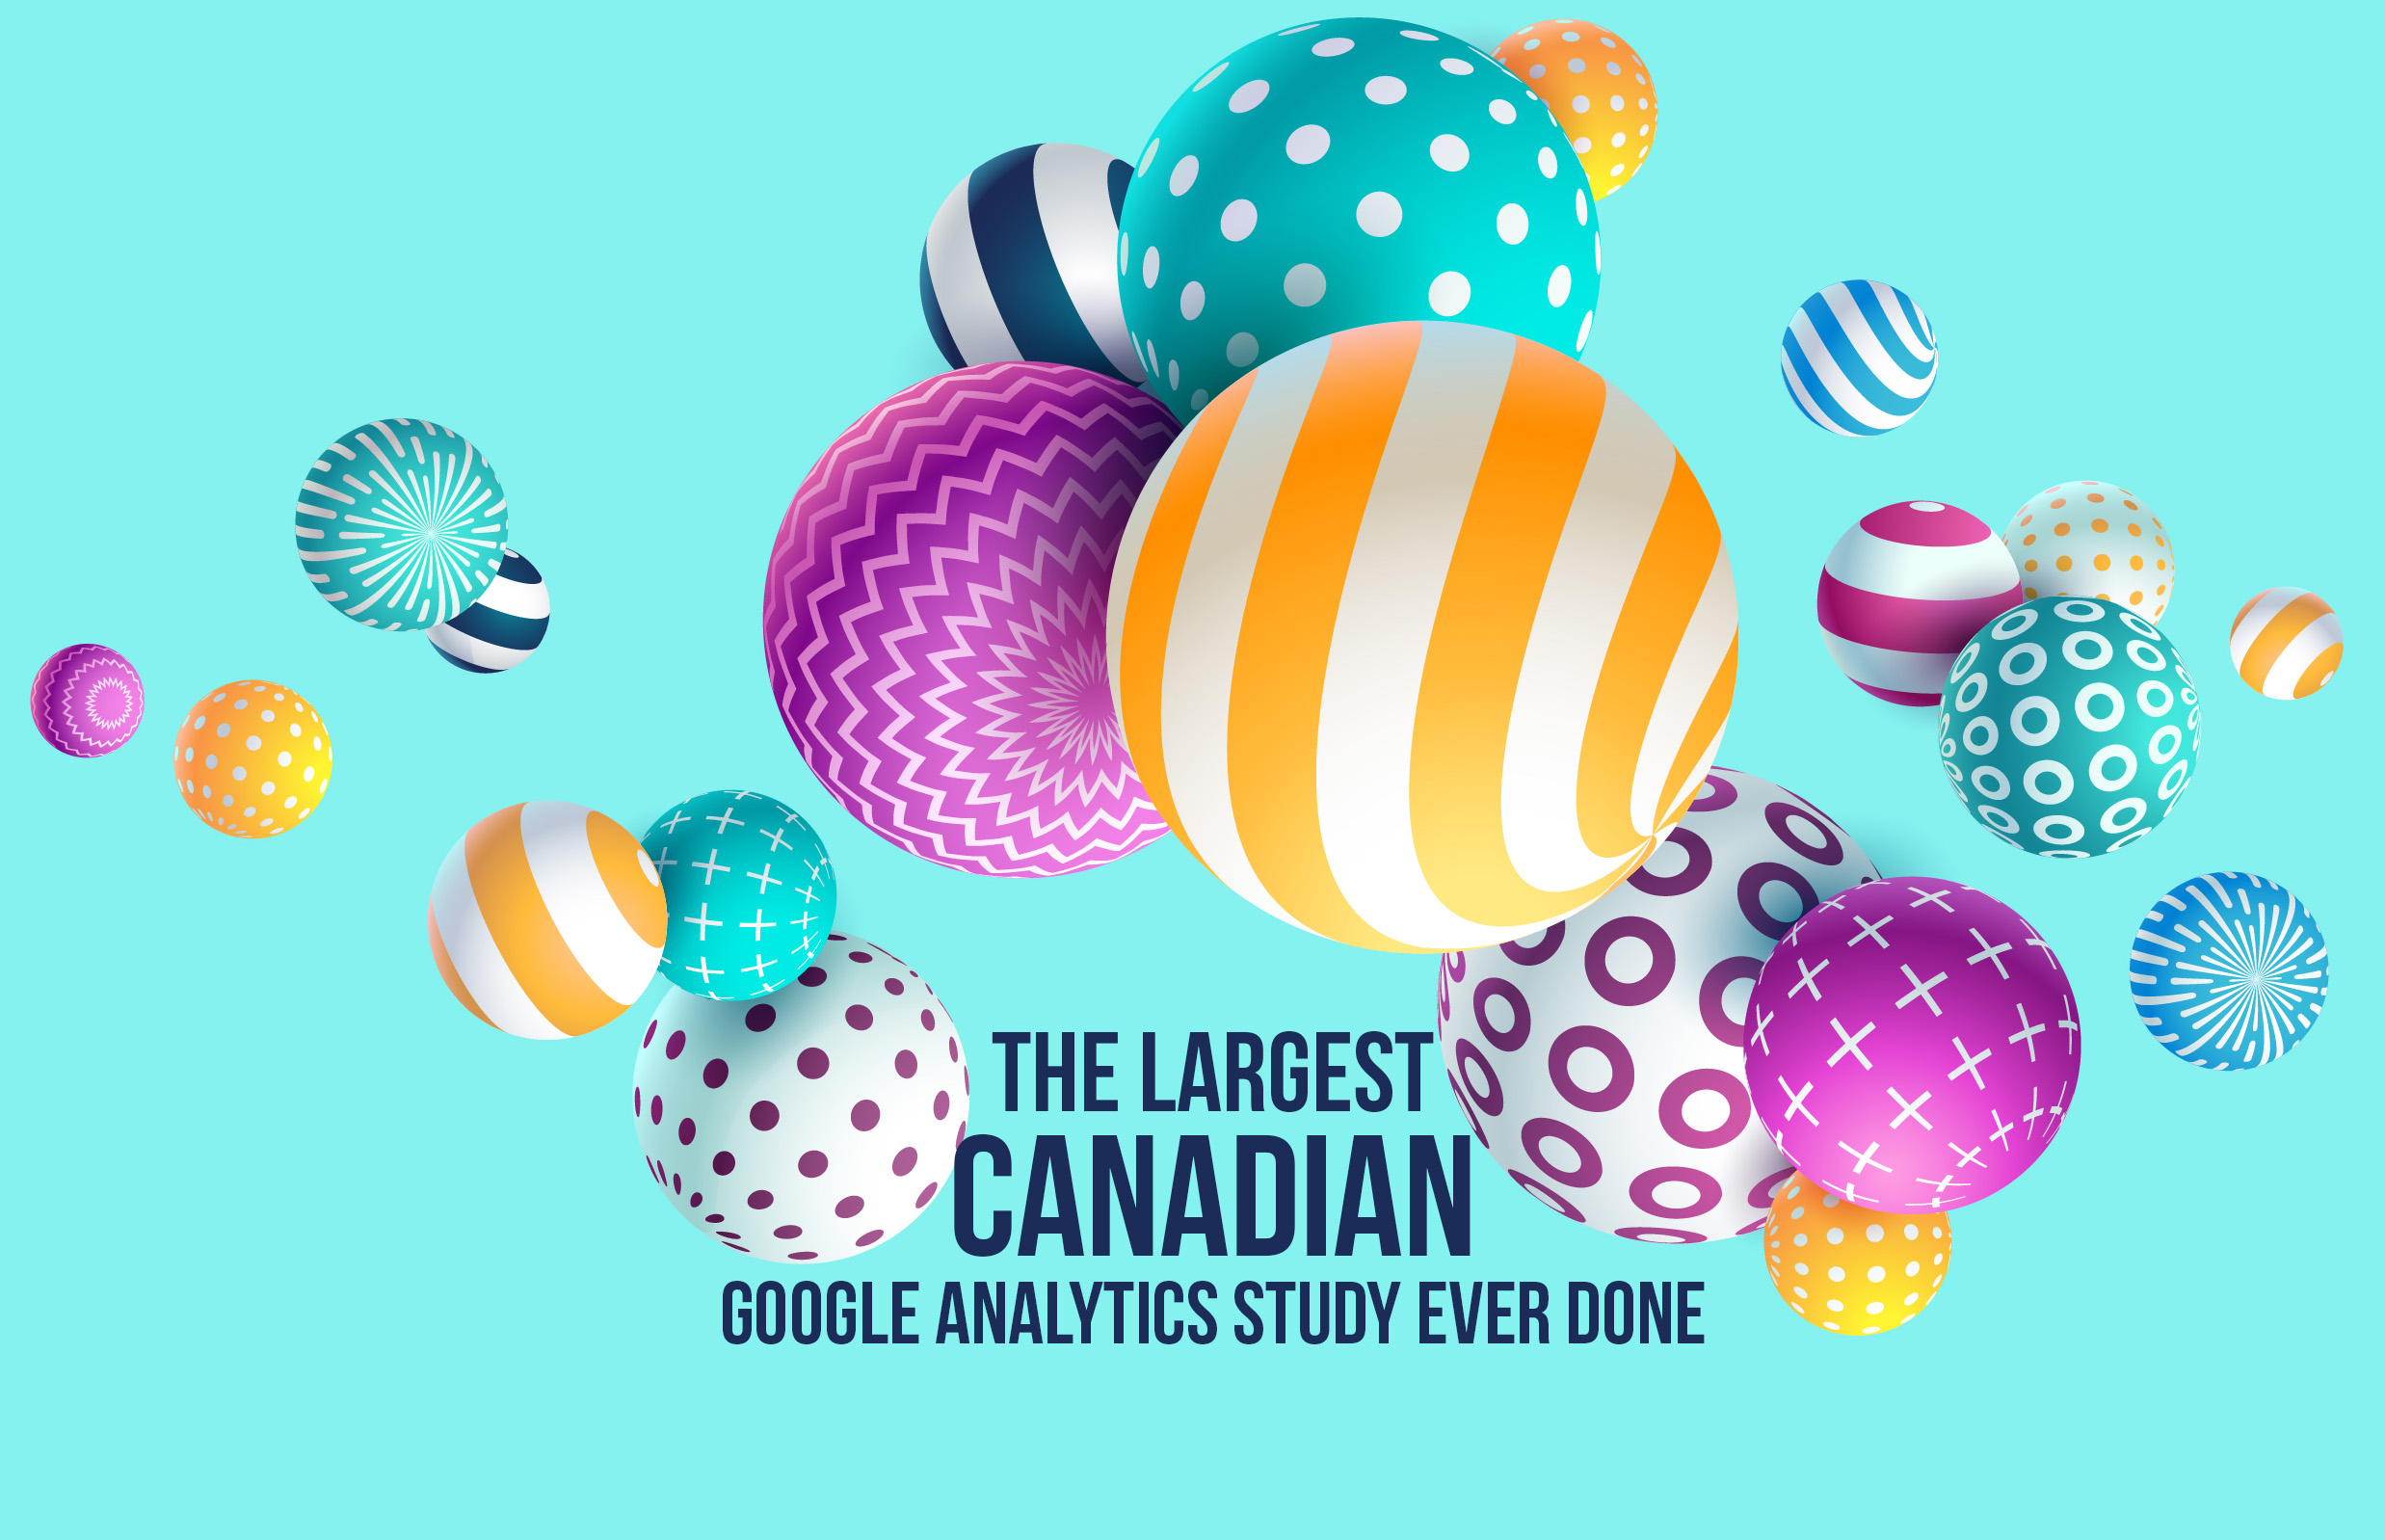 The Largest Canadian Google Analytics Study ever done